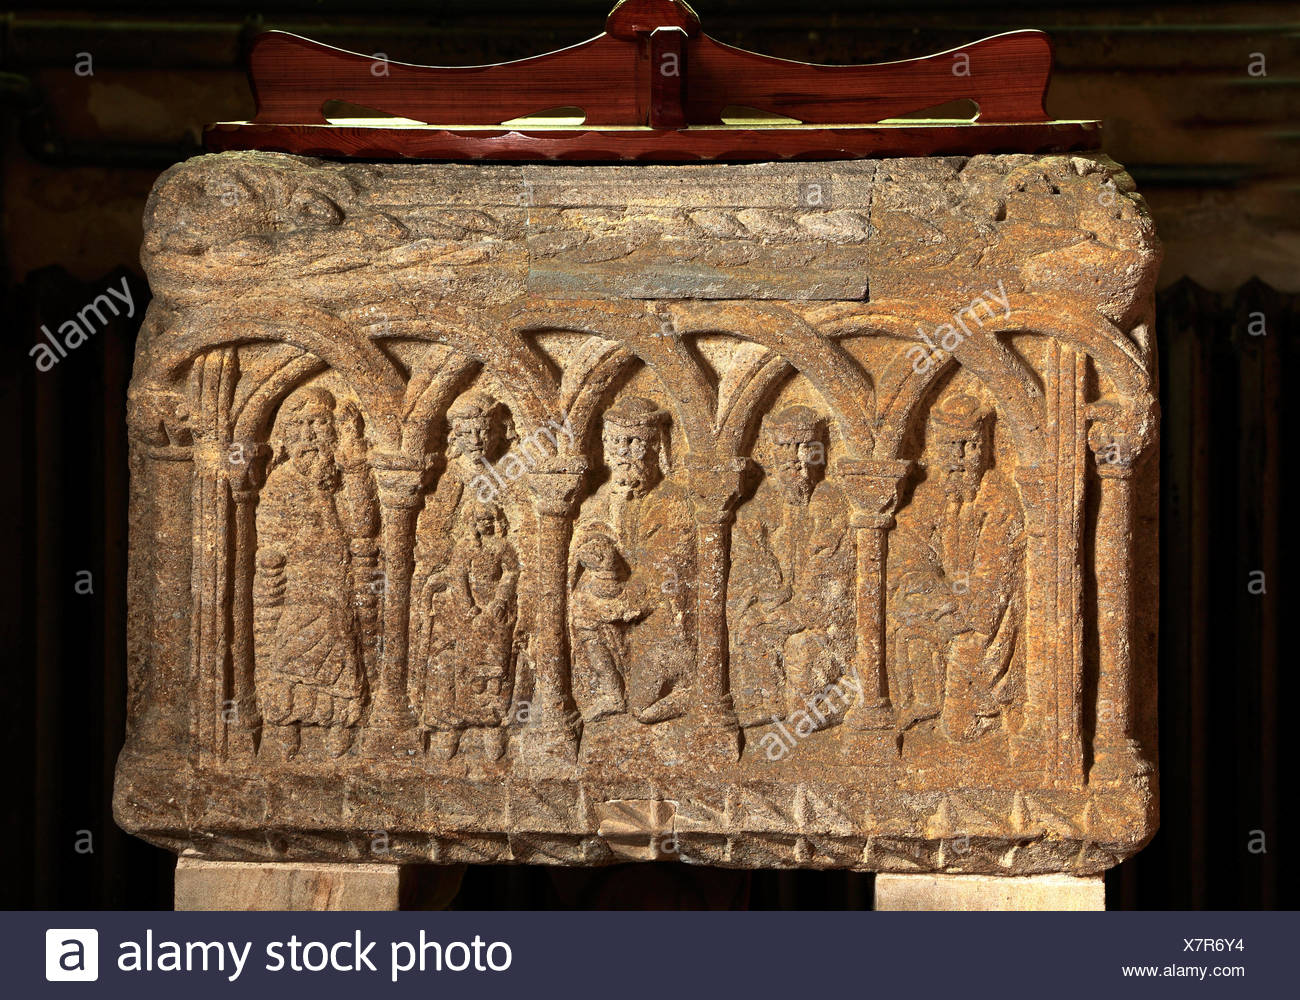 Sculthorpe church, Norman 12th century Font, Adoration of the Magi, stone carvings in interlocking Romanesque arches, Norfolk England UK - Stock Image